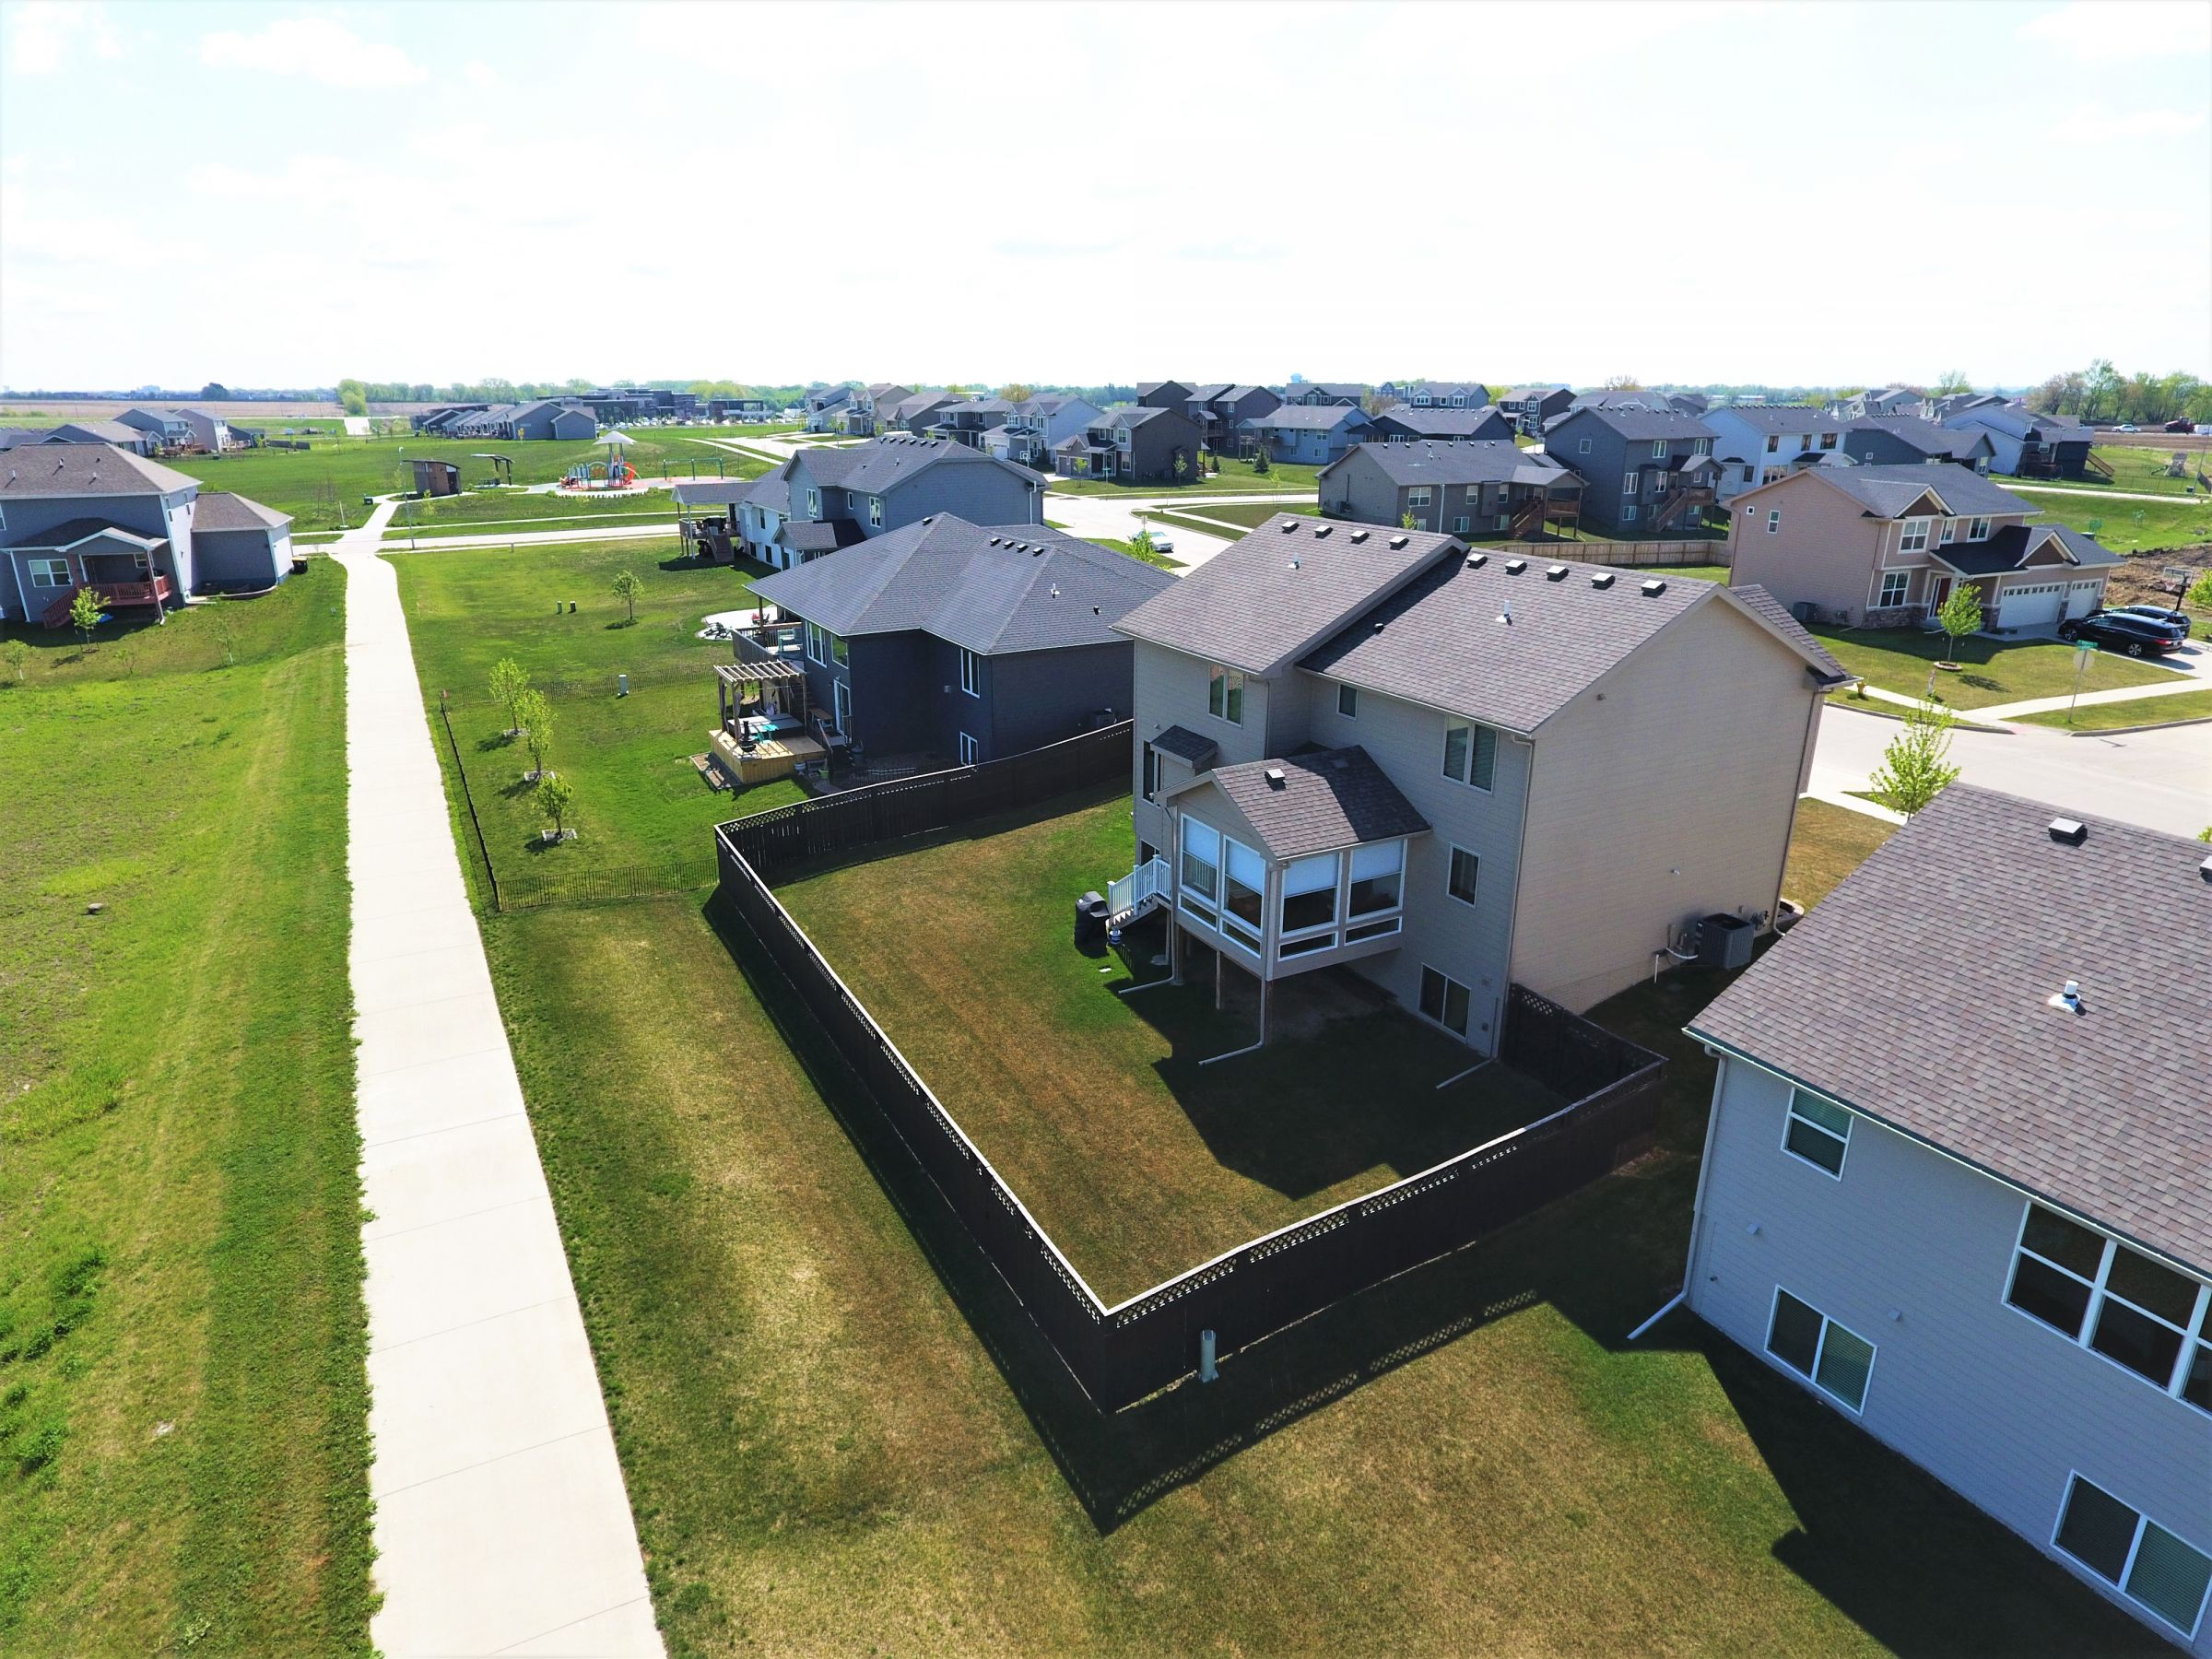 residential-dallas-county-iowa-0-acres-listing-number-15515-2-2021-05-06-213448.jpg